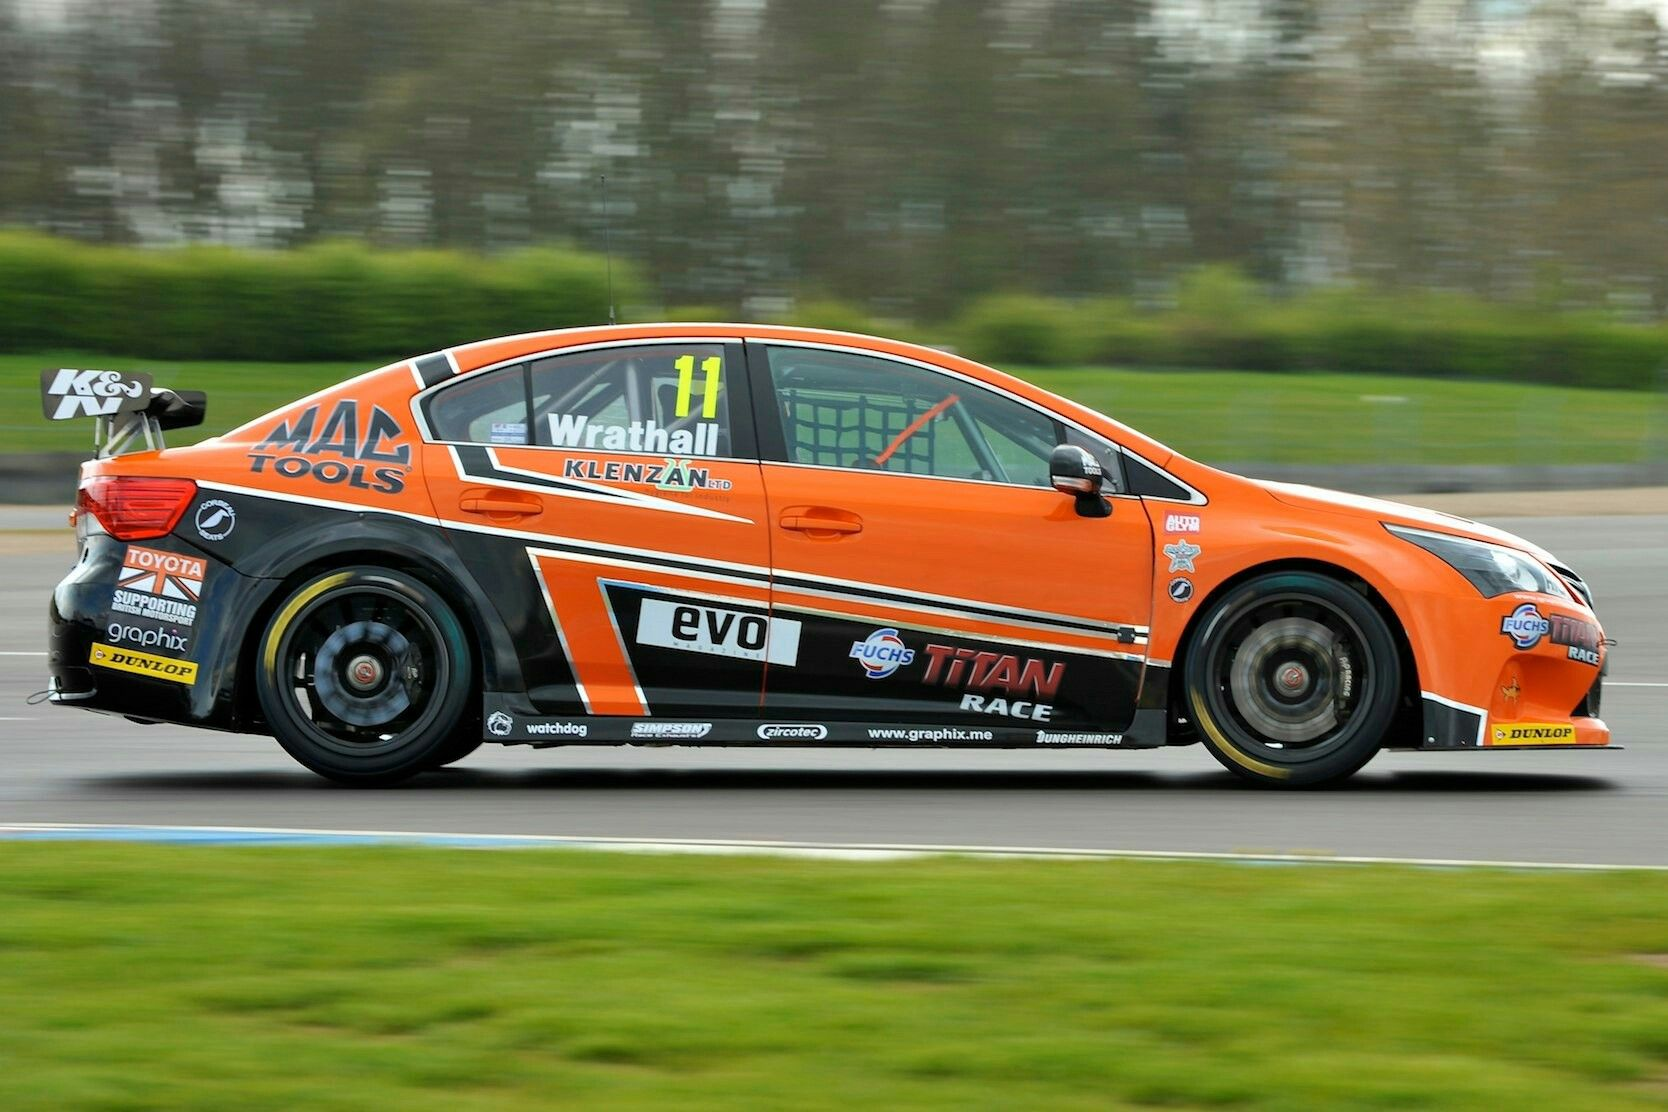 Awesome Toyota Avensis T270 | All Racing Cars Btcc Toyota Avensis T270 Race Pictures Gallery